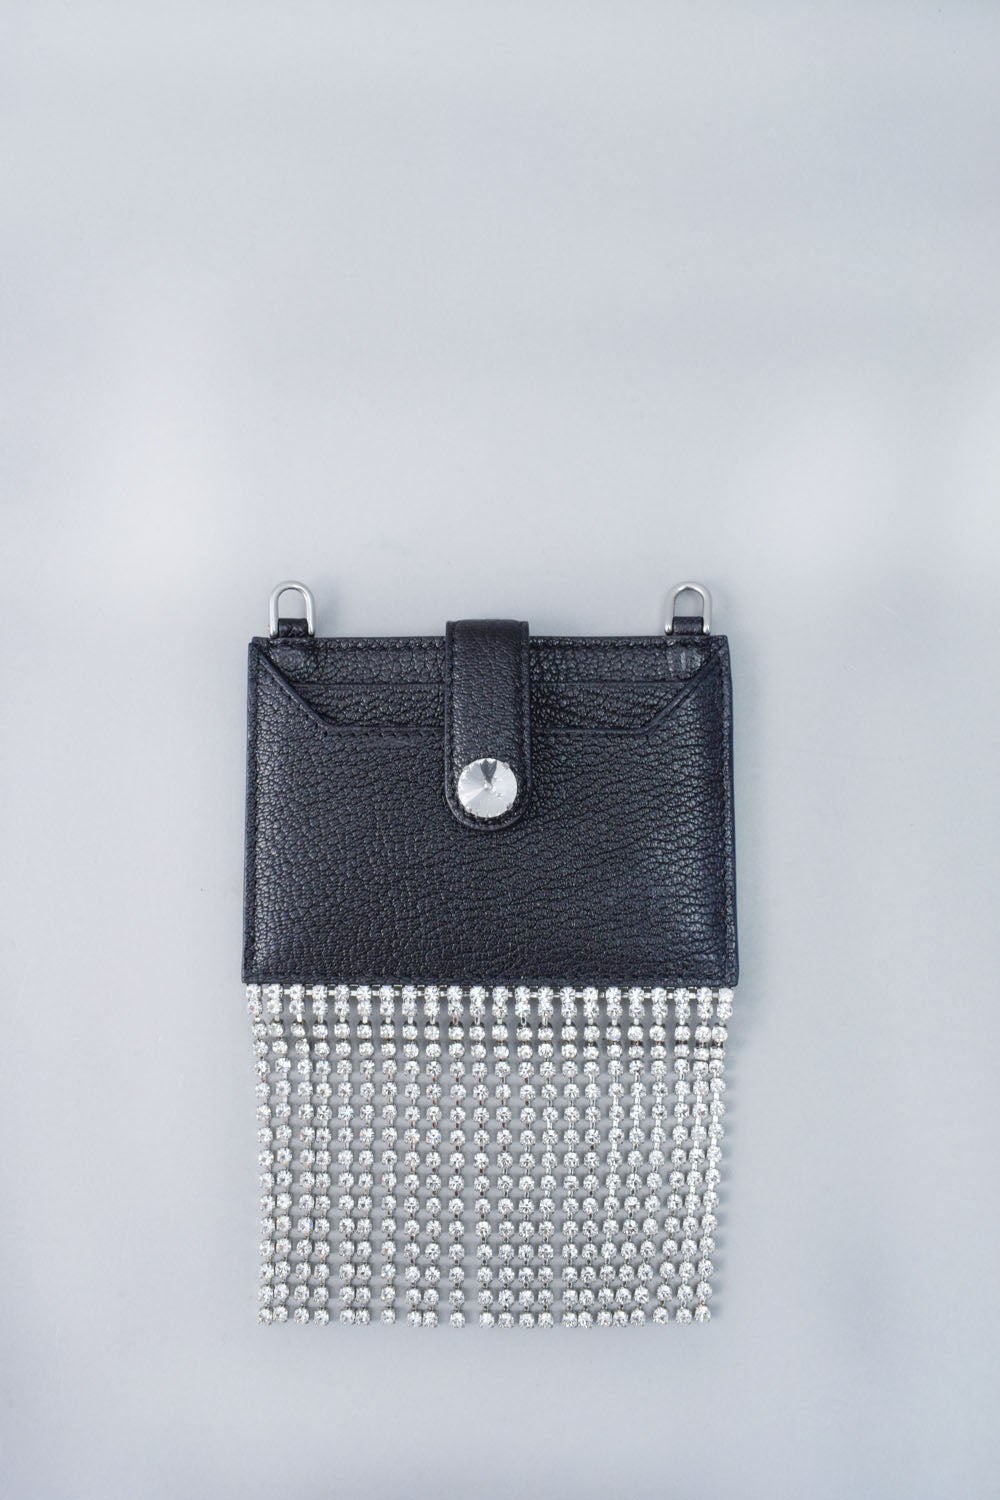 Miu Miu Black Leather Madras Cardholder w/ Crystal Tassle and Chain